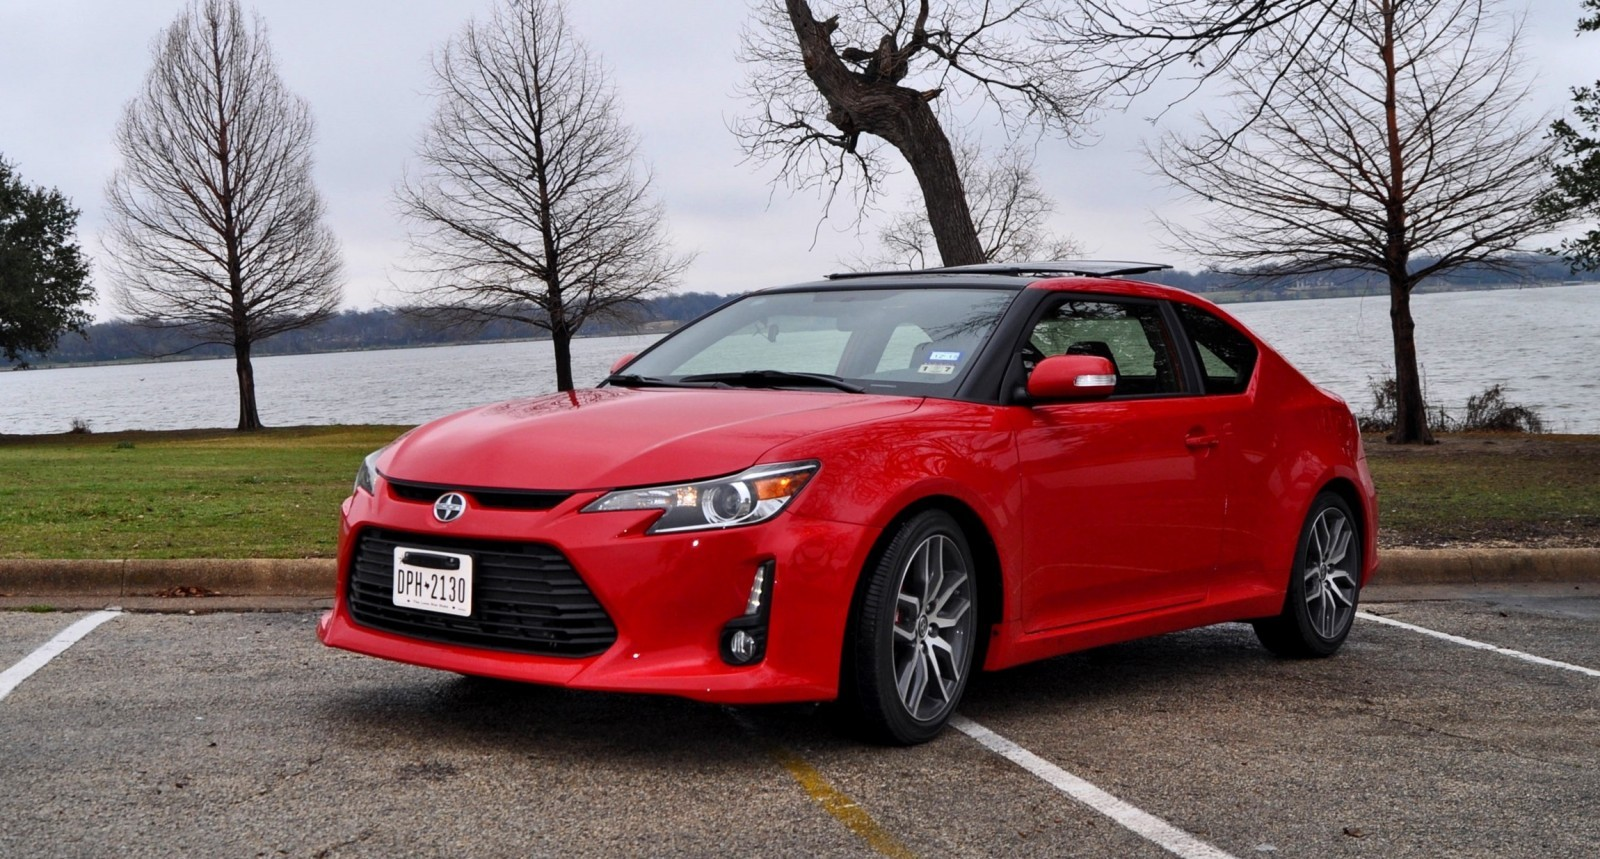 Road Test Review - 2015 Scion tC 6-Speed With TRD Performance Parts 72